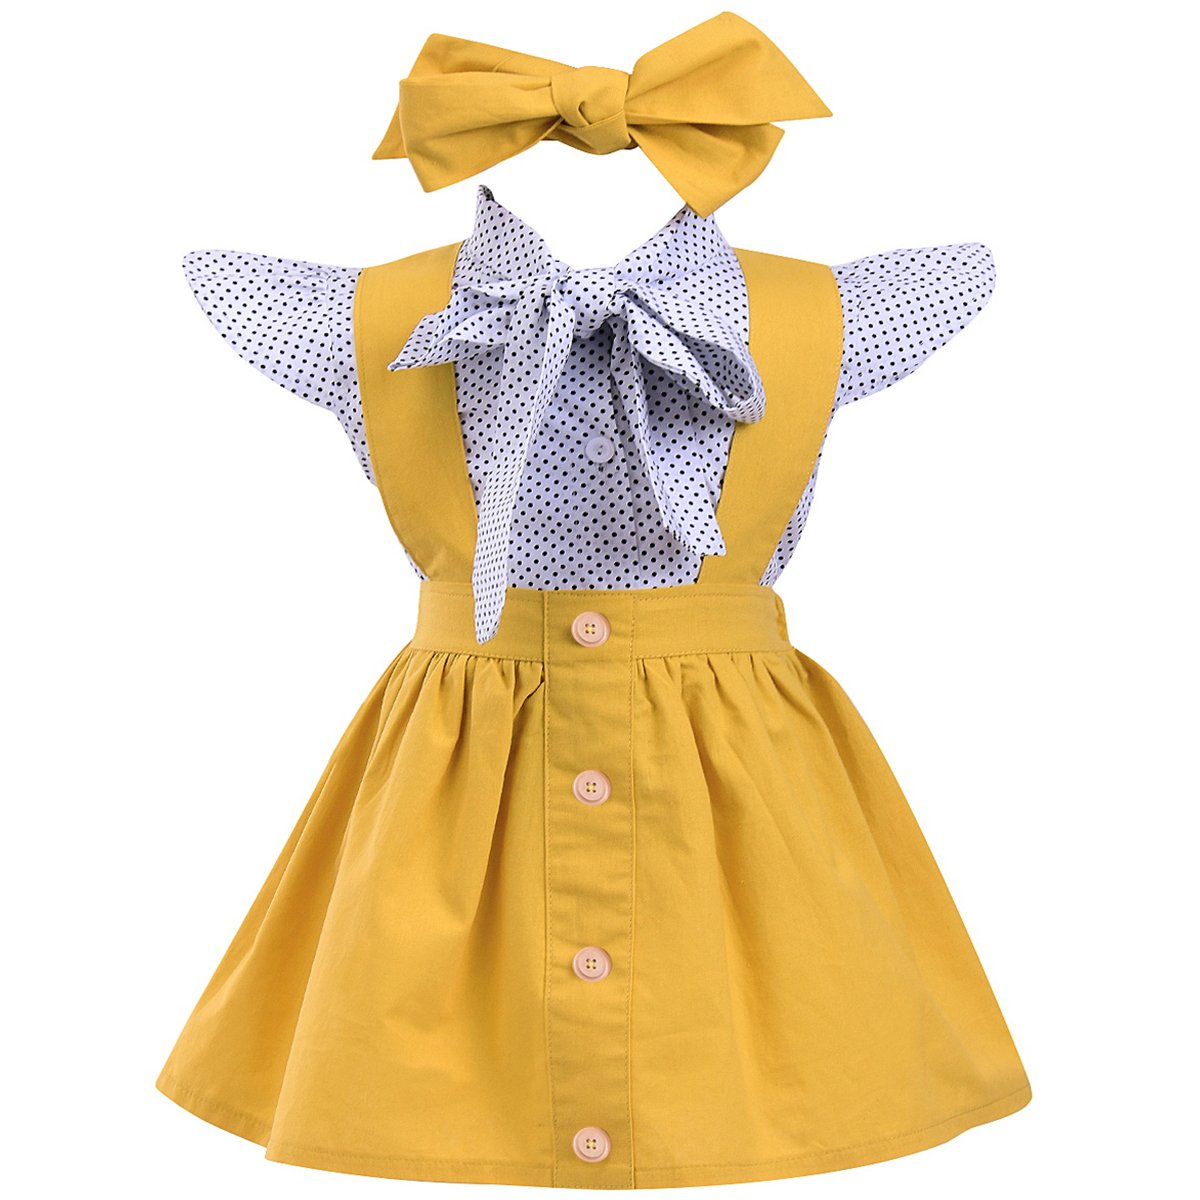 Annvivi Kids Baby Girl 3pcs Outfits Polka Dot Ruffles Sleeve Bowknot Shirt Top+Suspender Braces Skirt Overalls with Headband